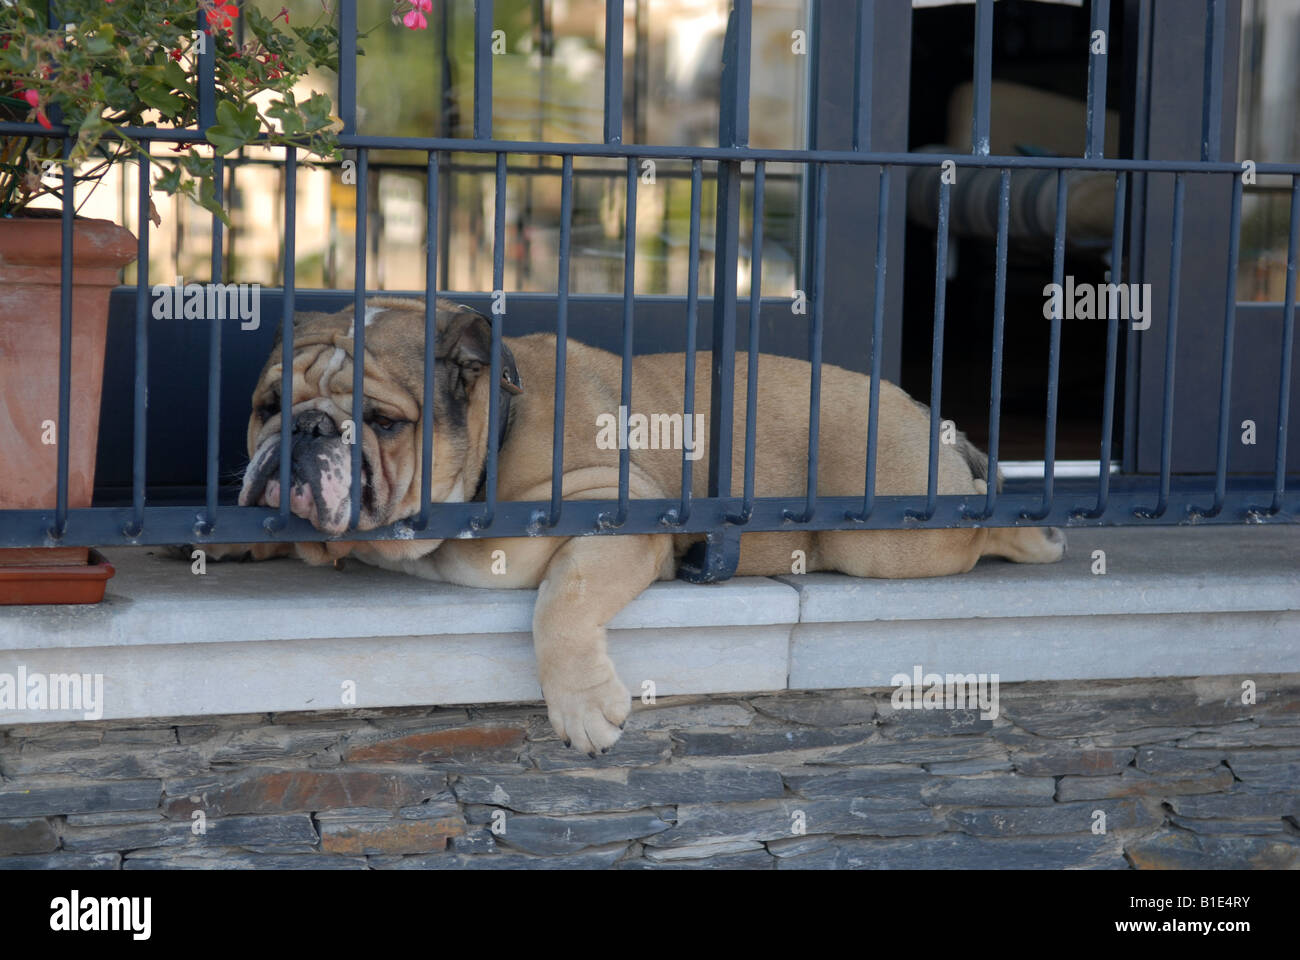 Sleeping dog on balcony - Stock Image